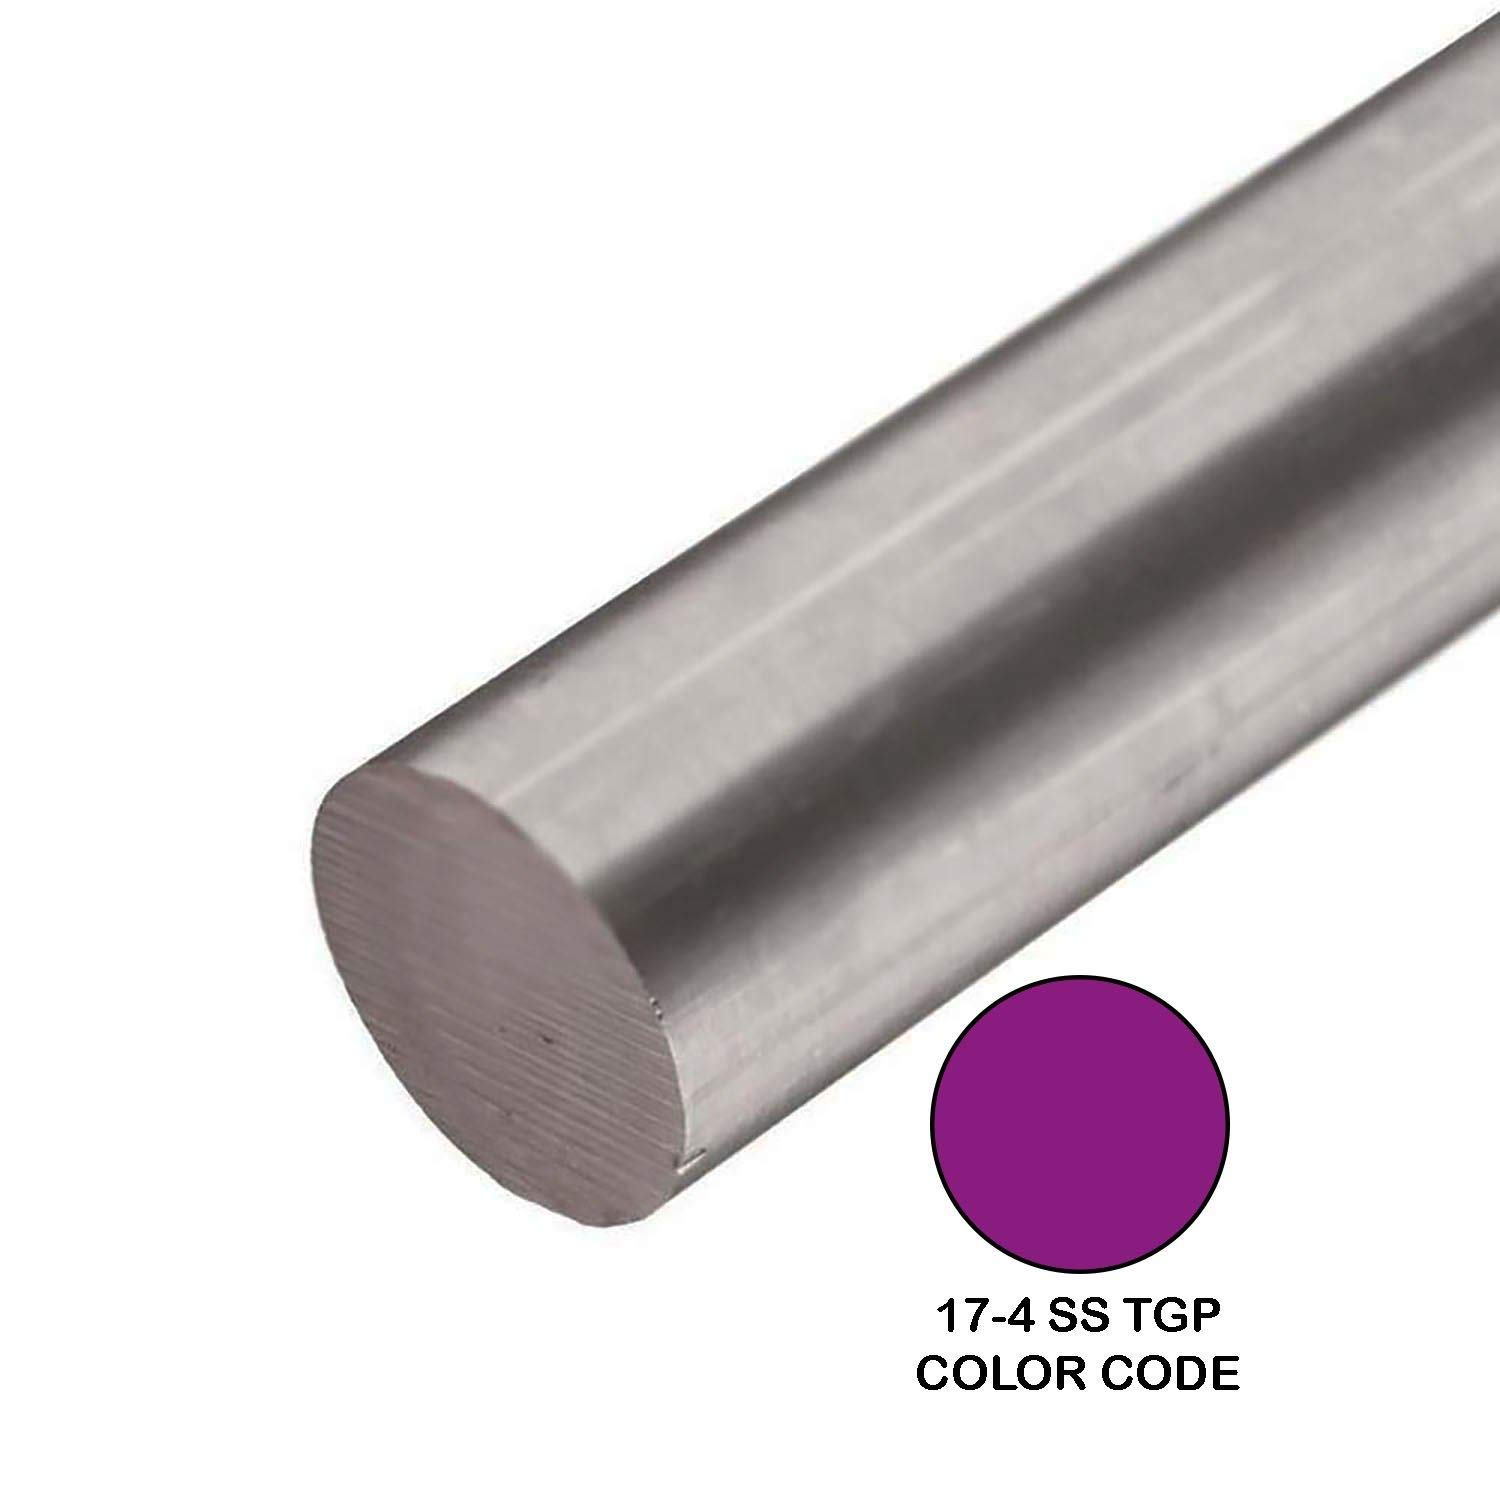 Online Metal Supply 17-4 TGP Stainless Steel Round Rod, 0.500 (1/2 inch) x 48 inches by Online Metal Supply